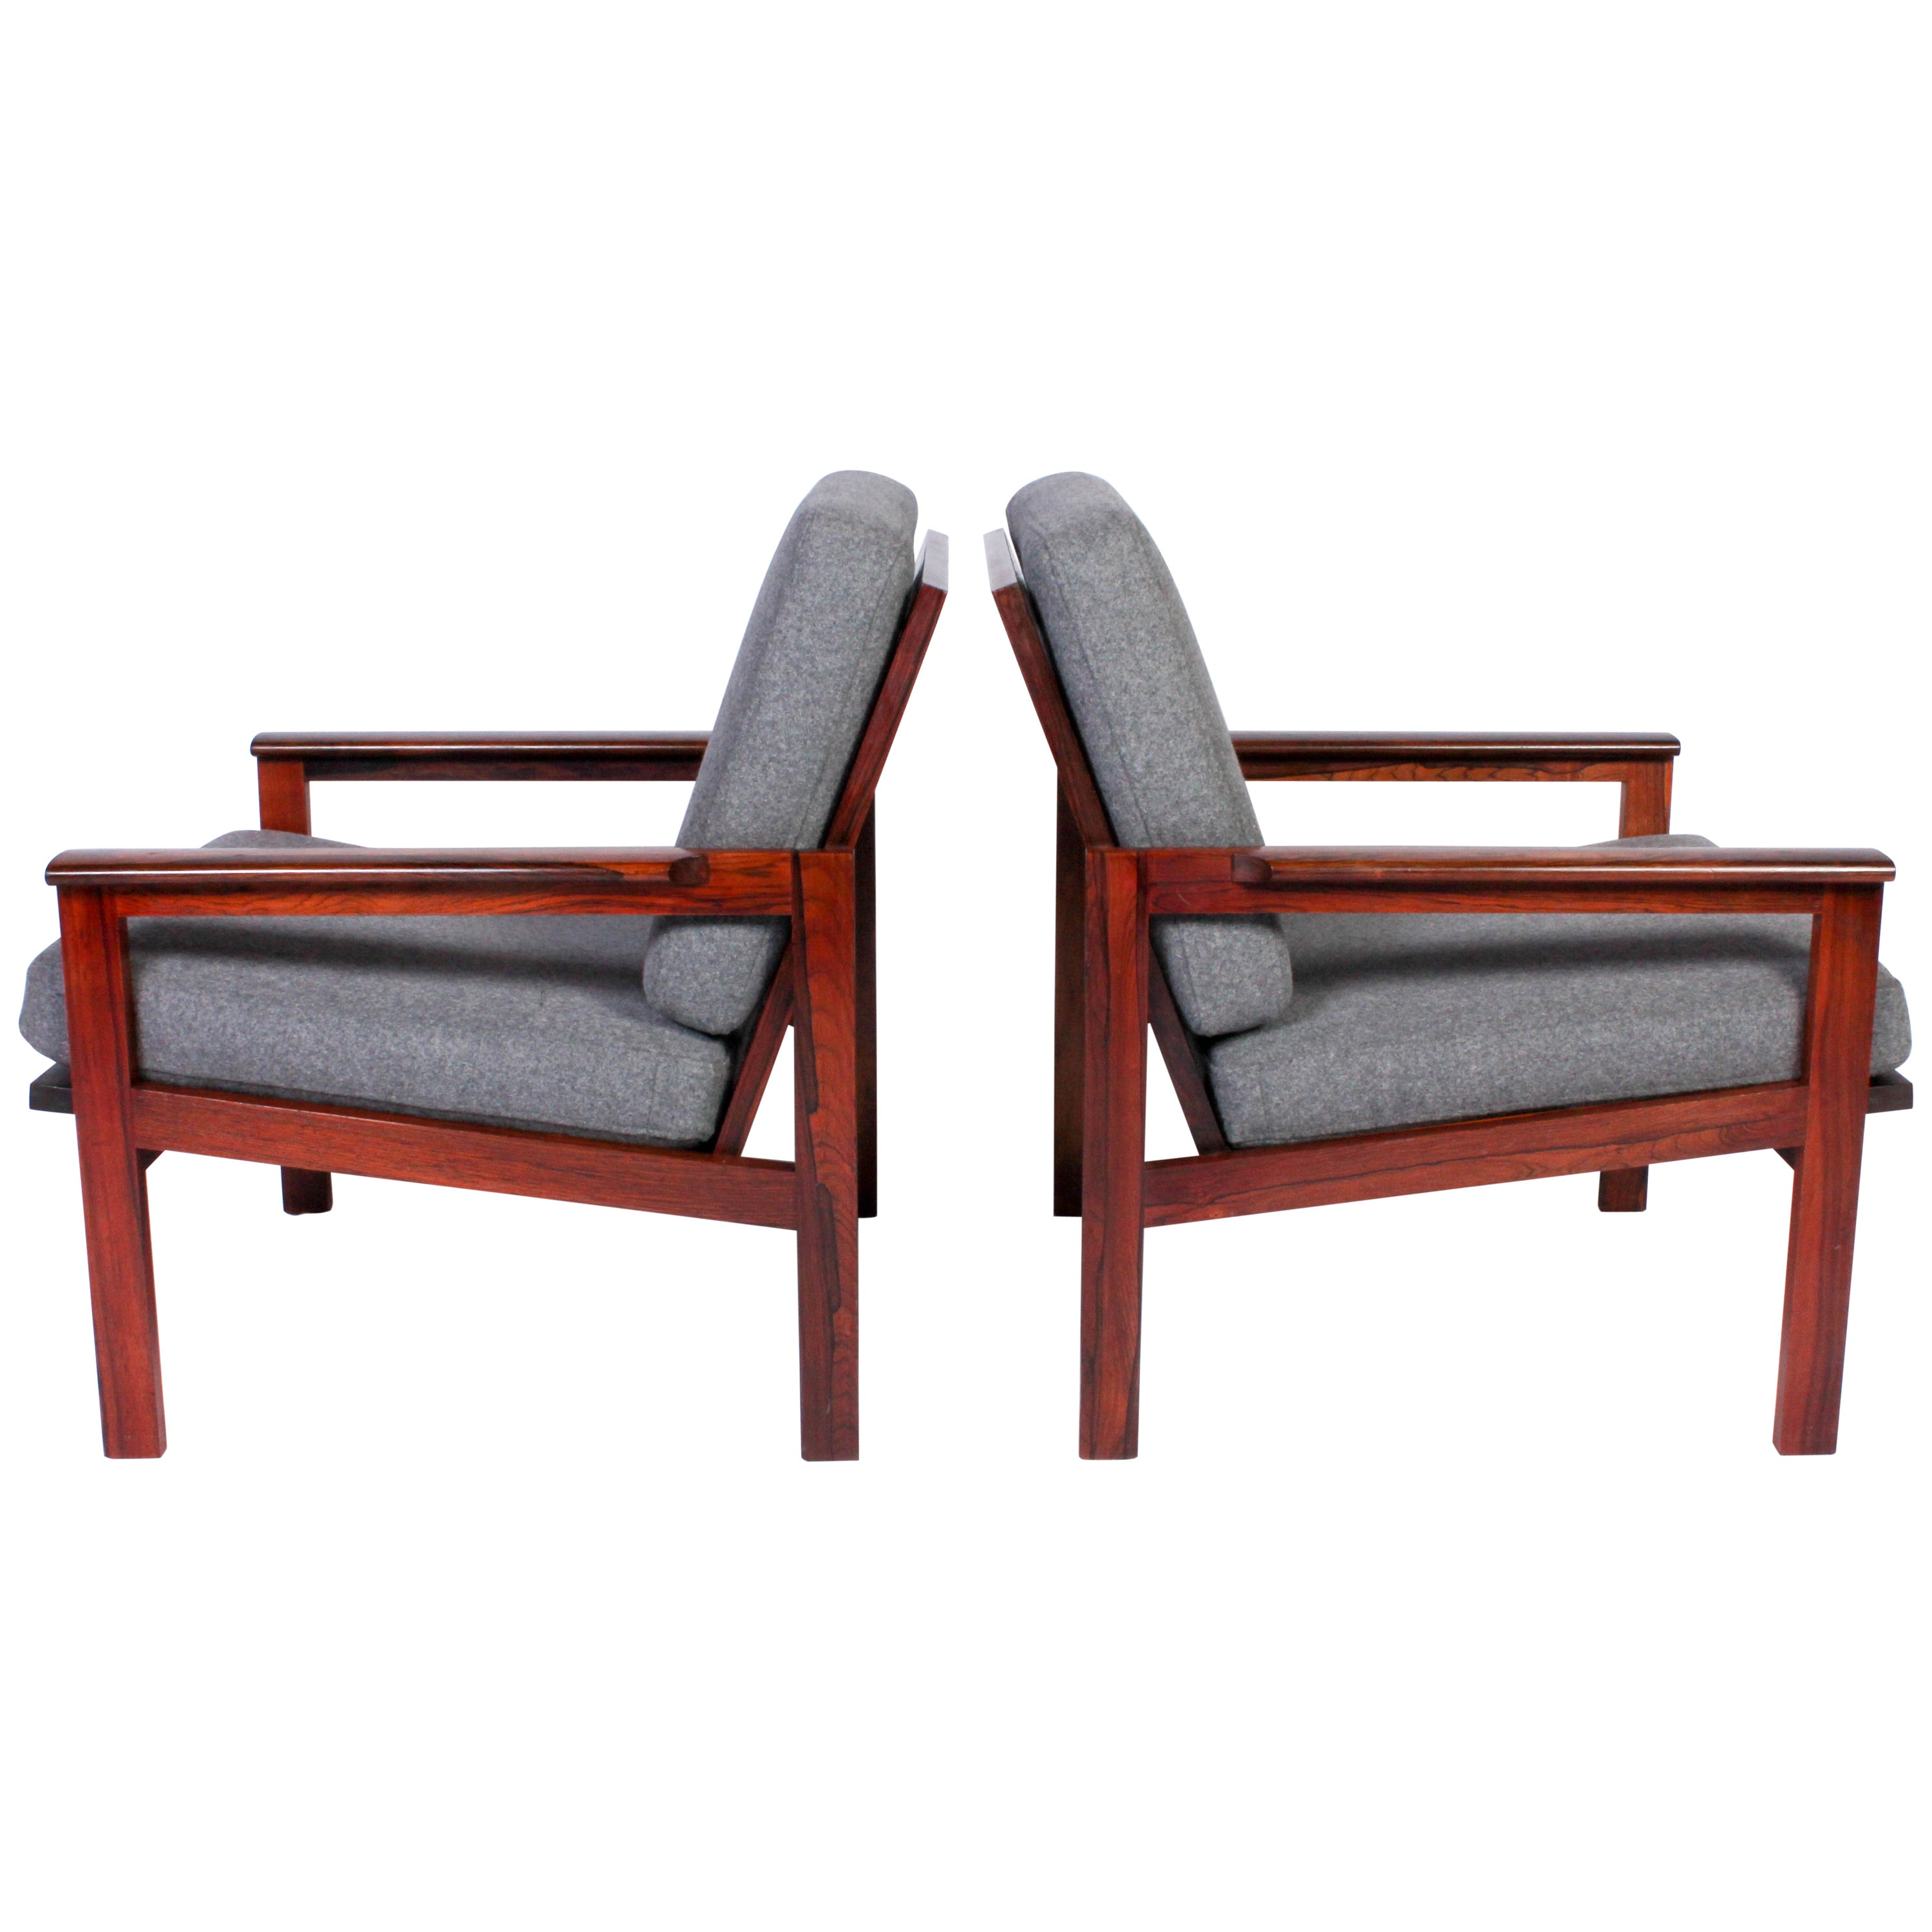 Pair of Rosewood Capella Lounge Chairs by Illum Wikkelsø